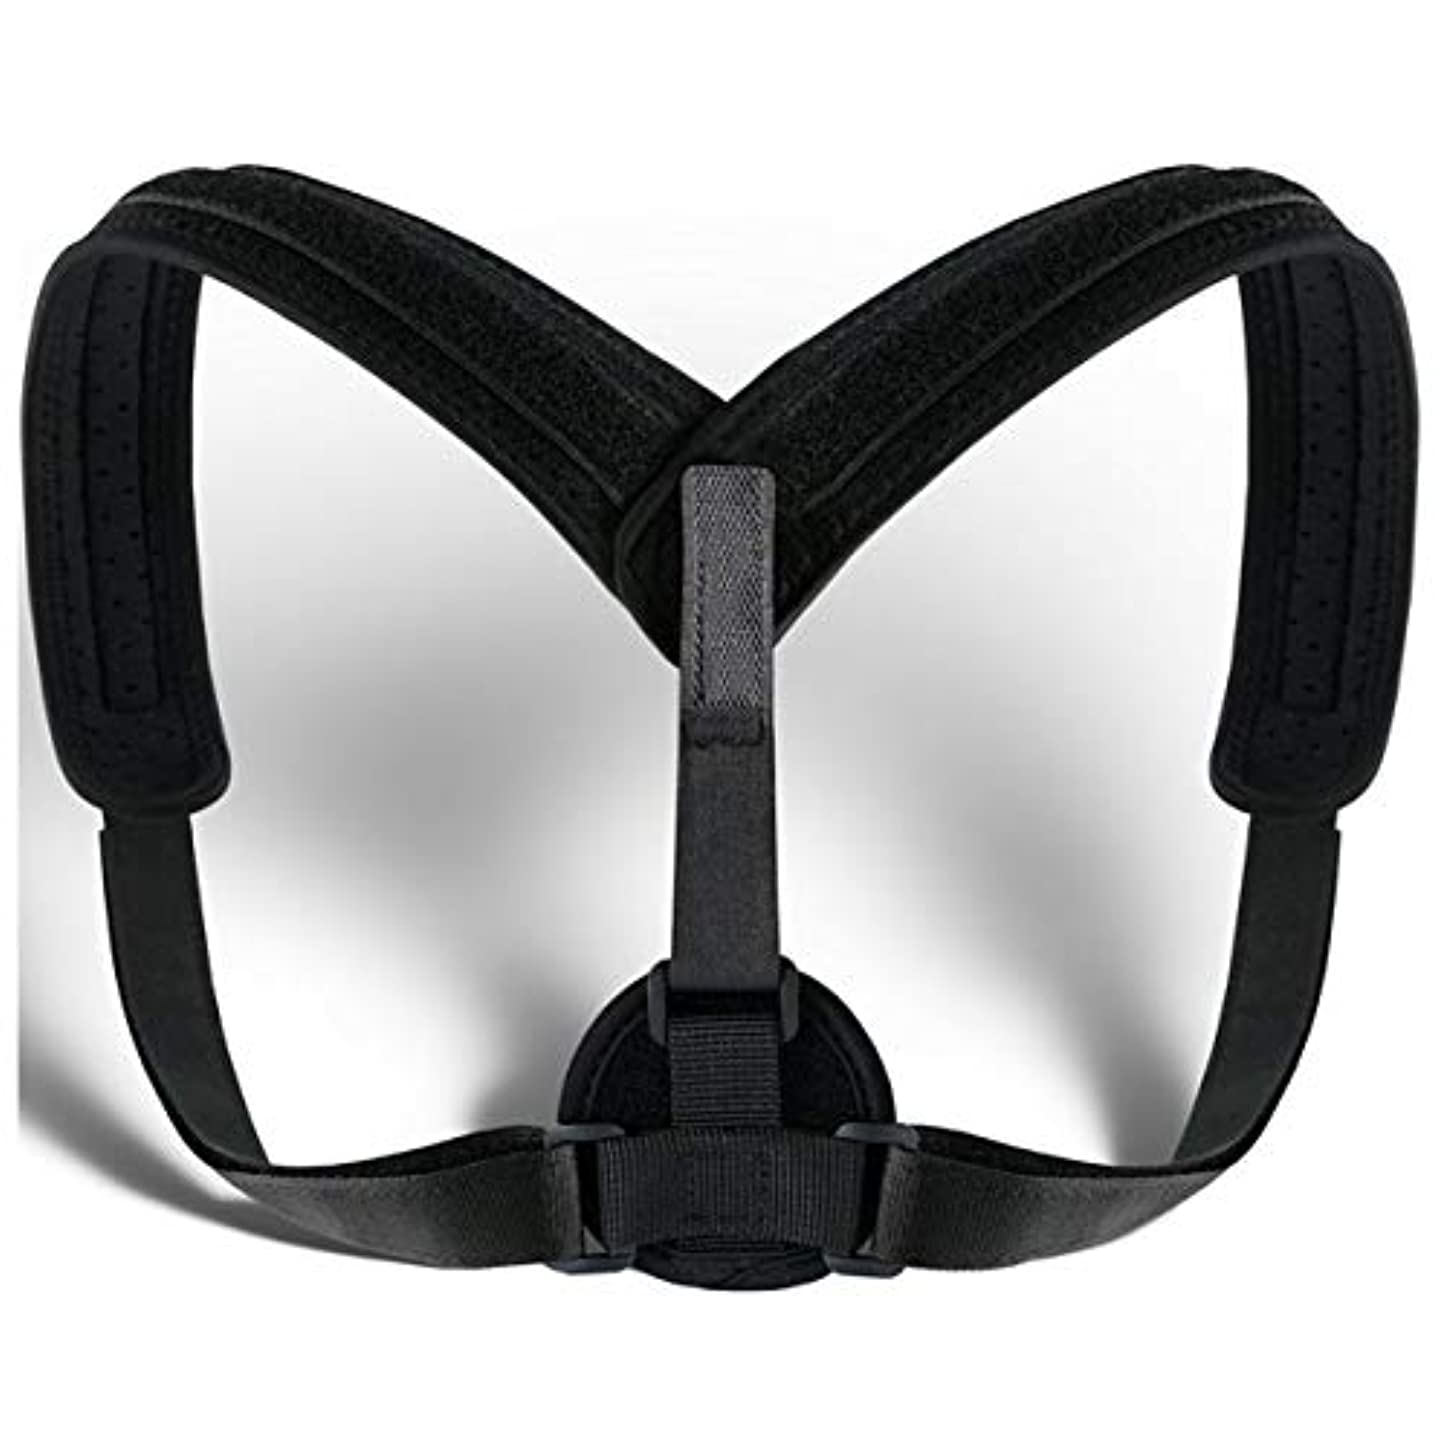 参照しっとり五月Unisex Posture Corrector Lumbar Lower Back Support Shoulder Brace Pain Relief AU Back Posture Corrector